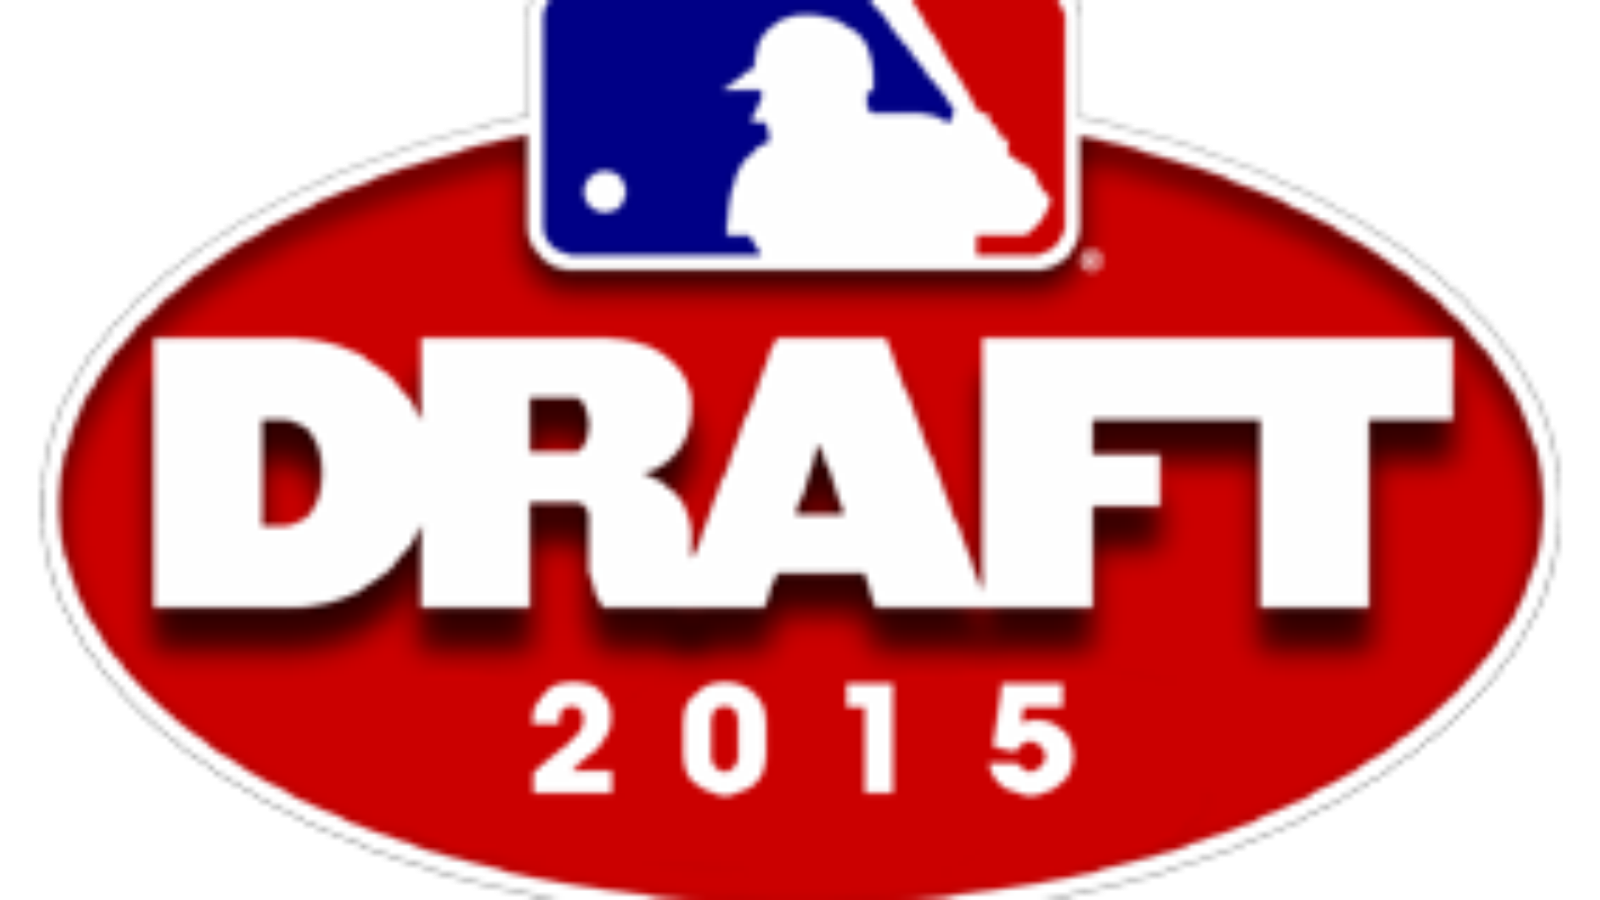 Minnesota twins baseball clipart transparent library 2015 MLB Draft - South Side Sox transparent library